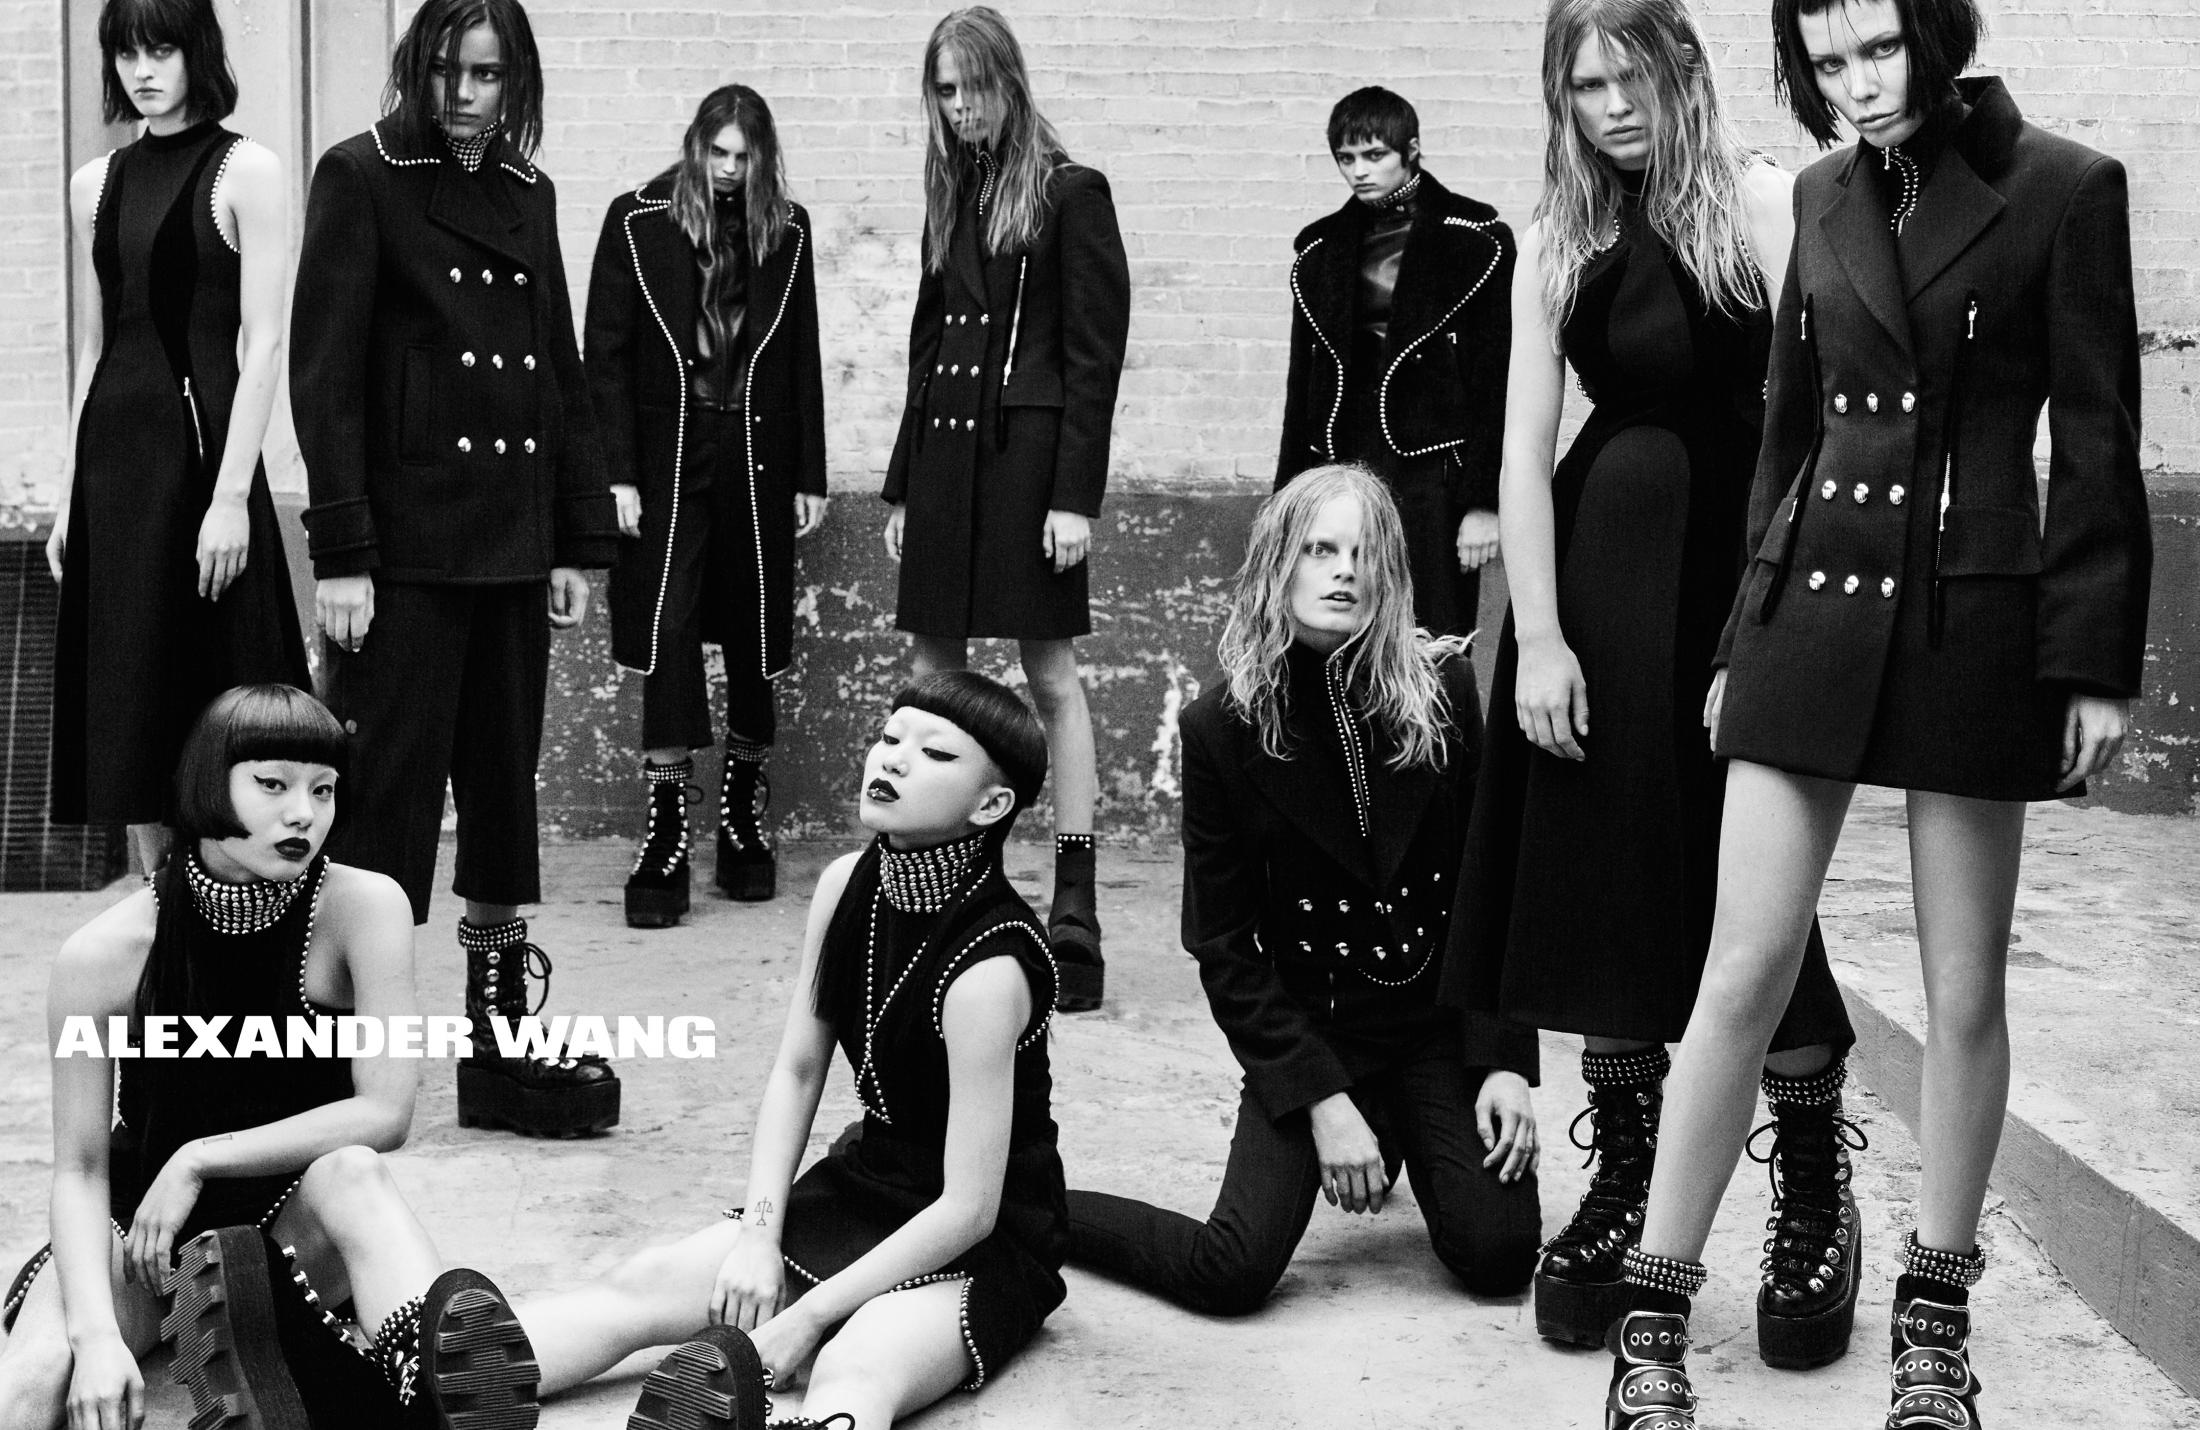 Image Media for Alexander Wang Fall/Winter 2015